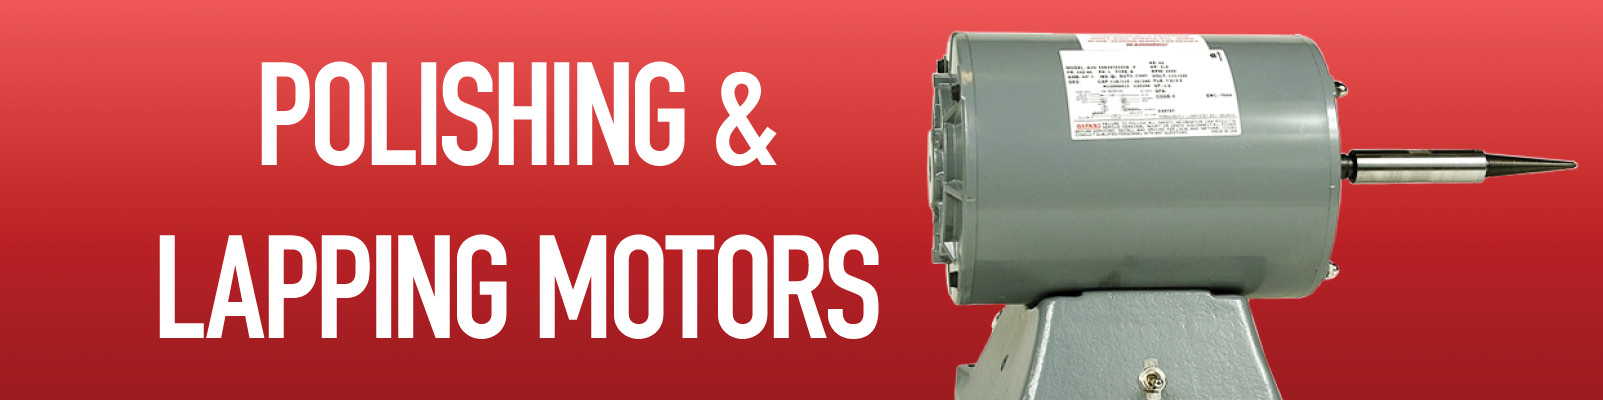 Polishing & Lapping Motors